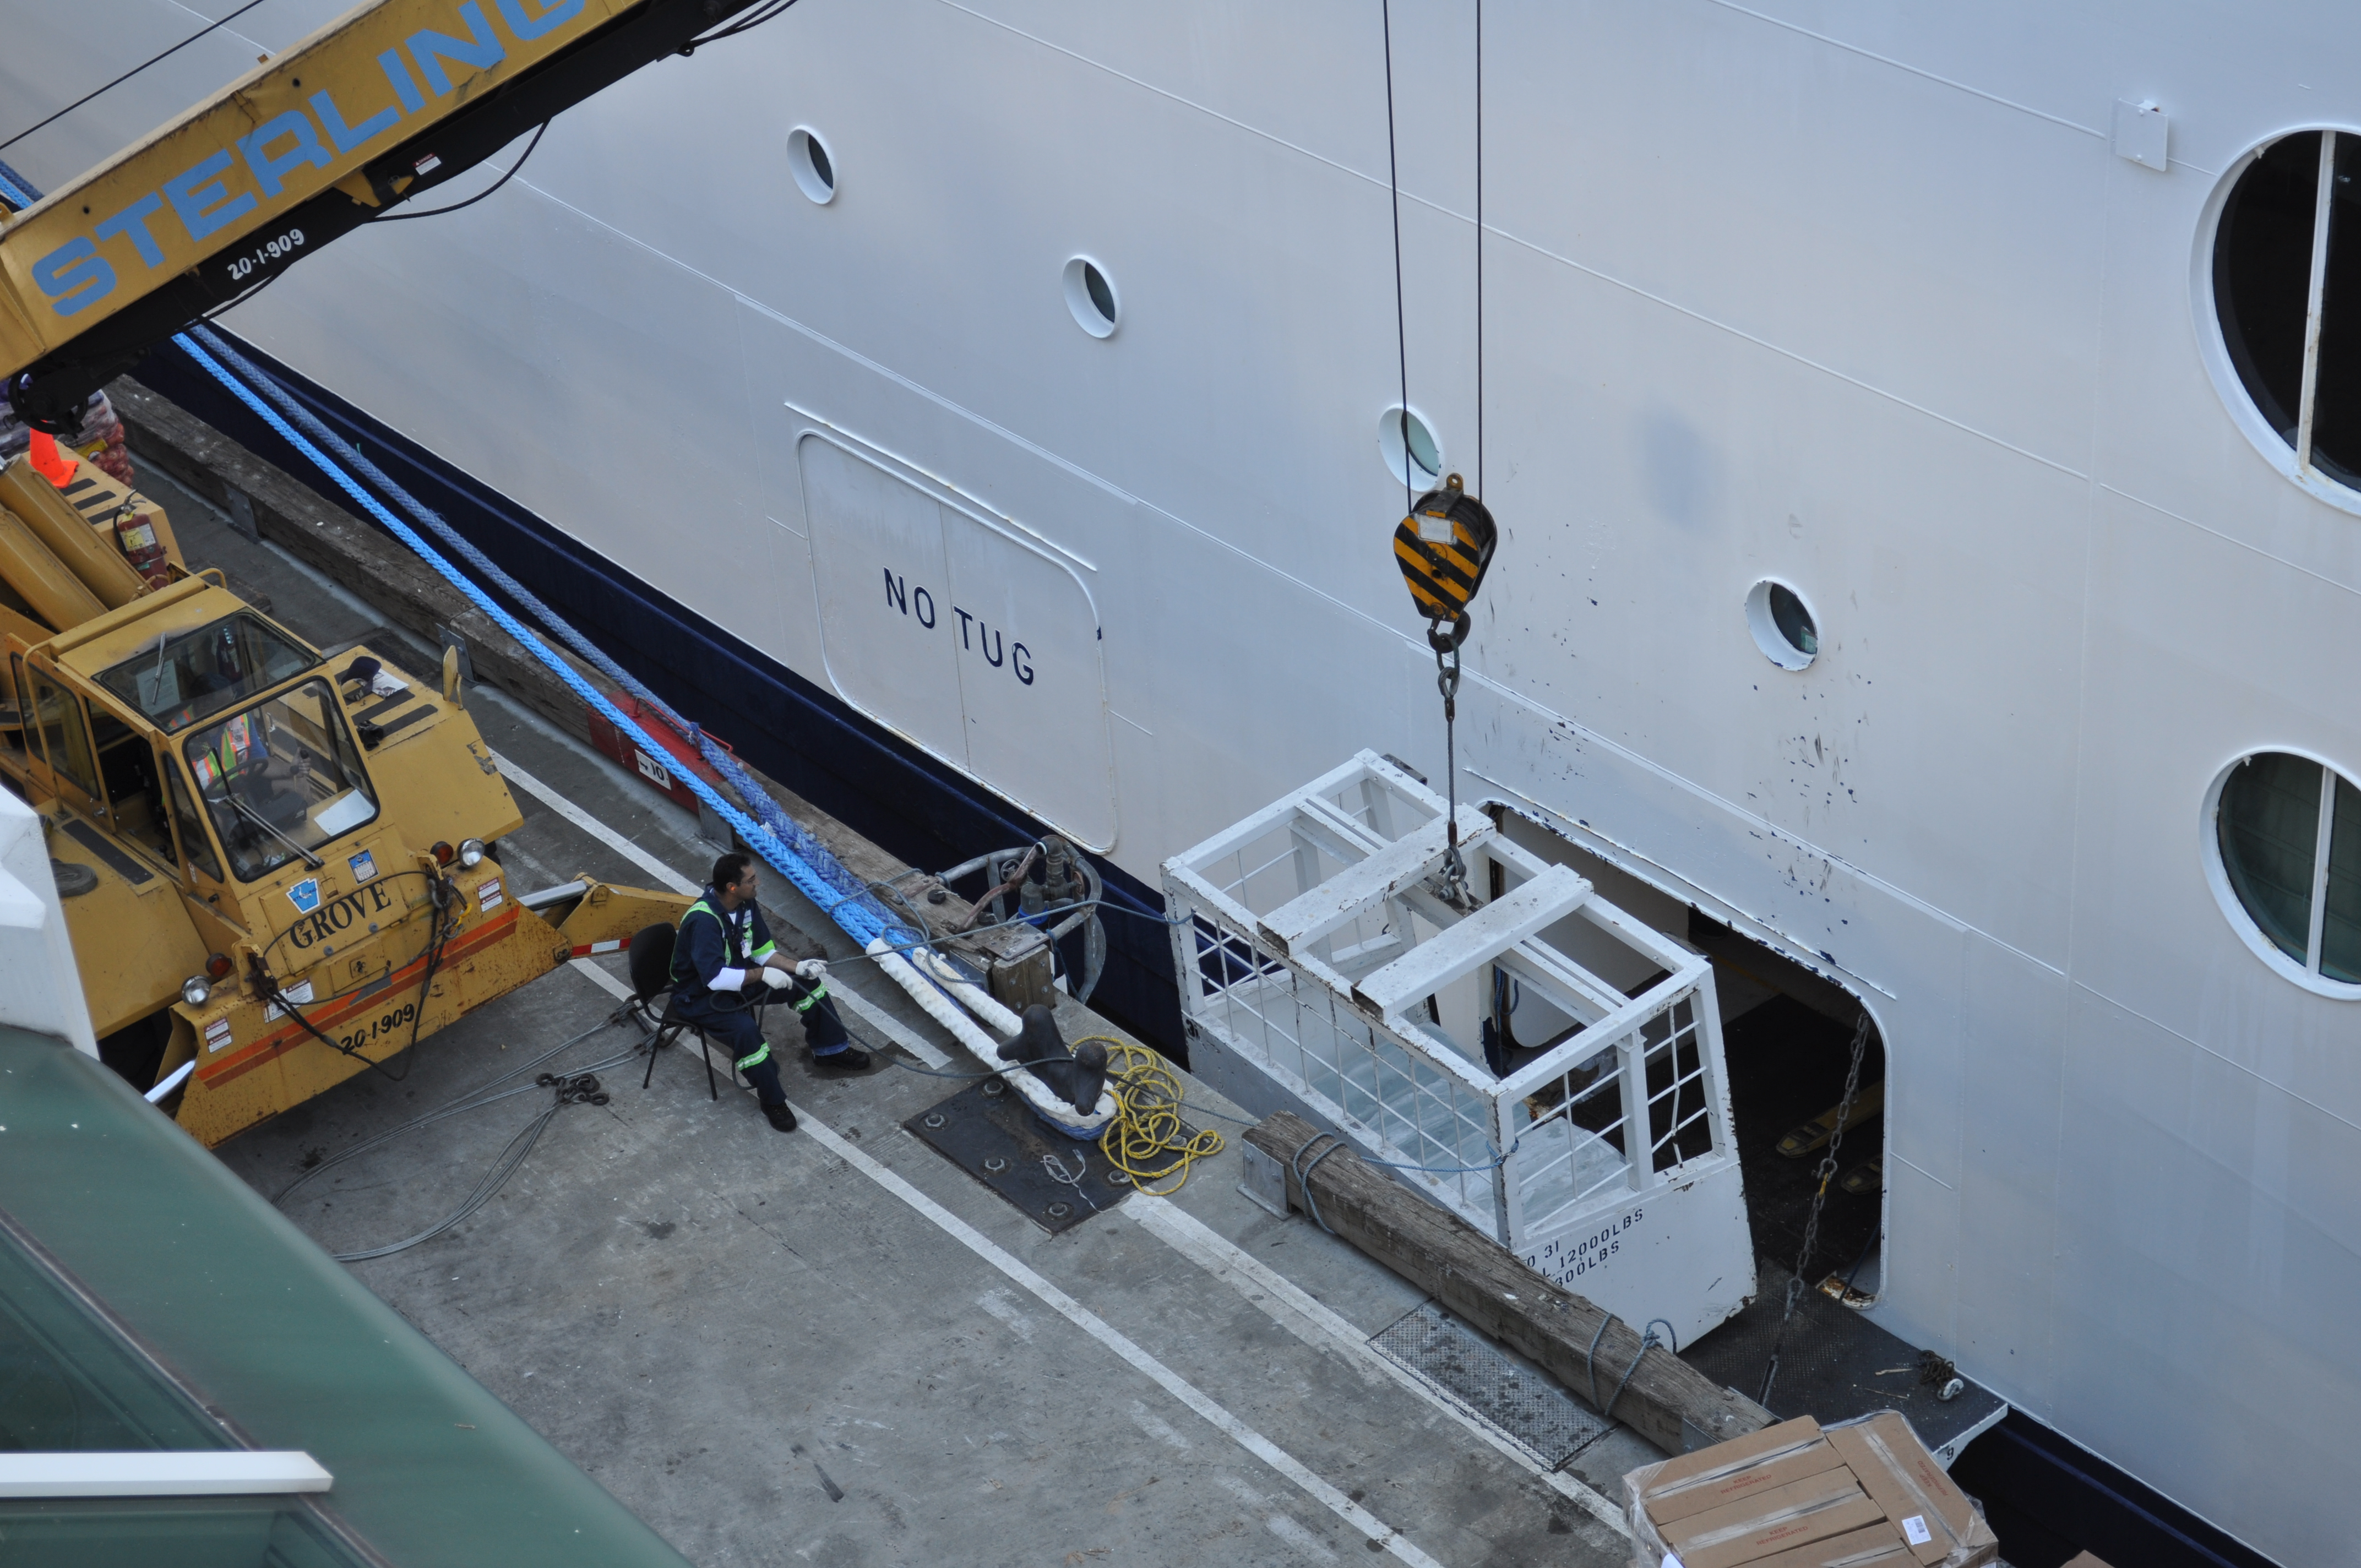 FileLoading Cargo Onto Celebrity Cruise Ship Jpg Wikimedia - Cargo cruise ship